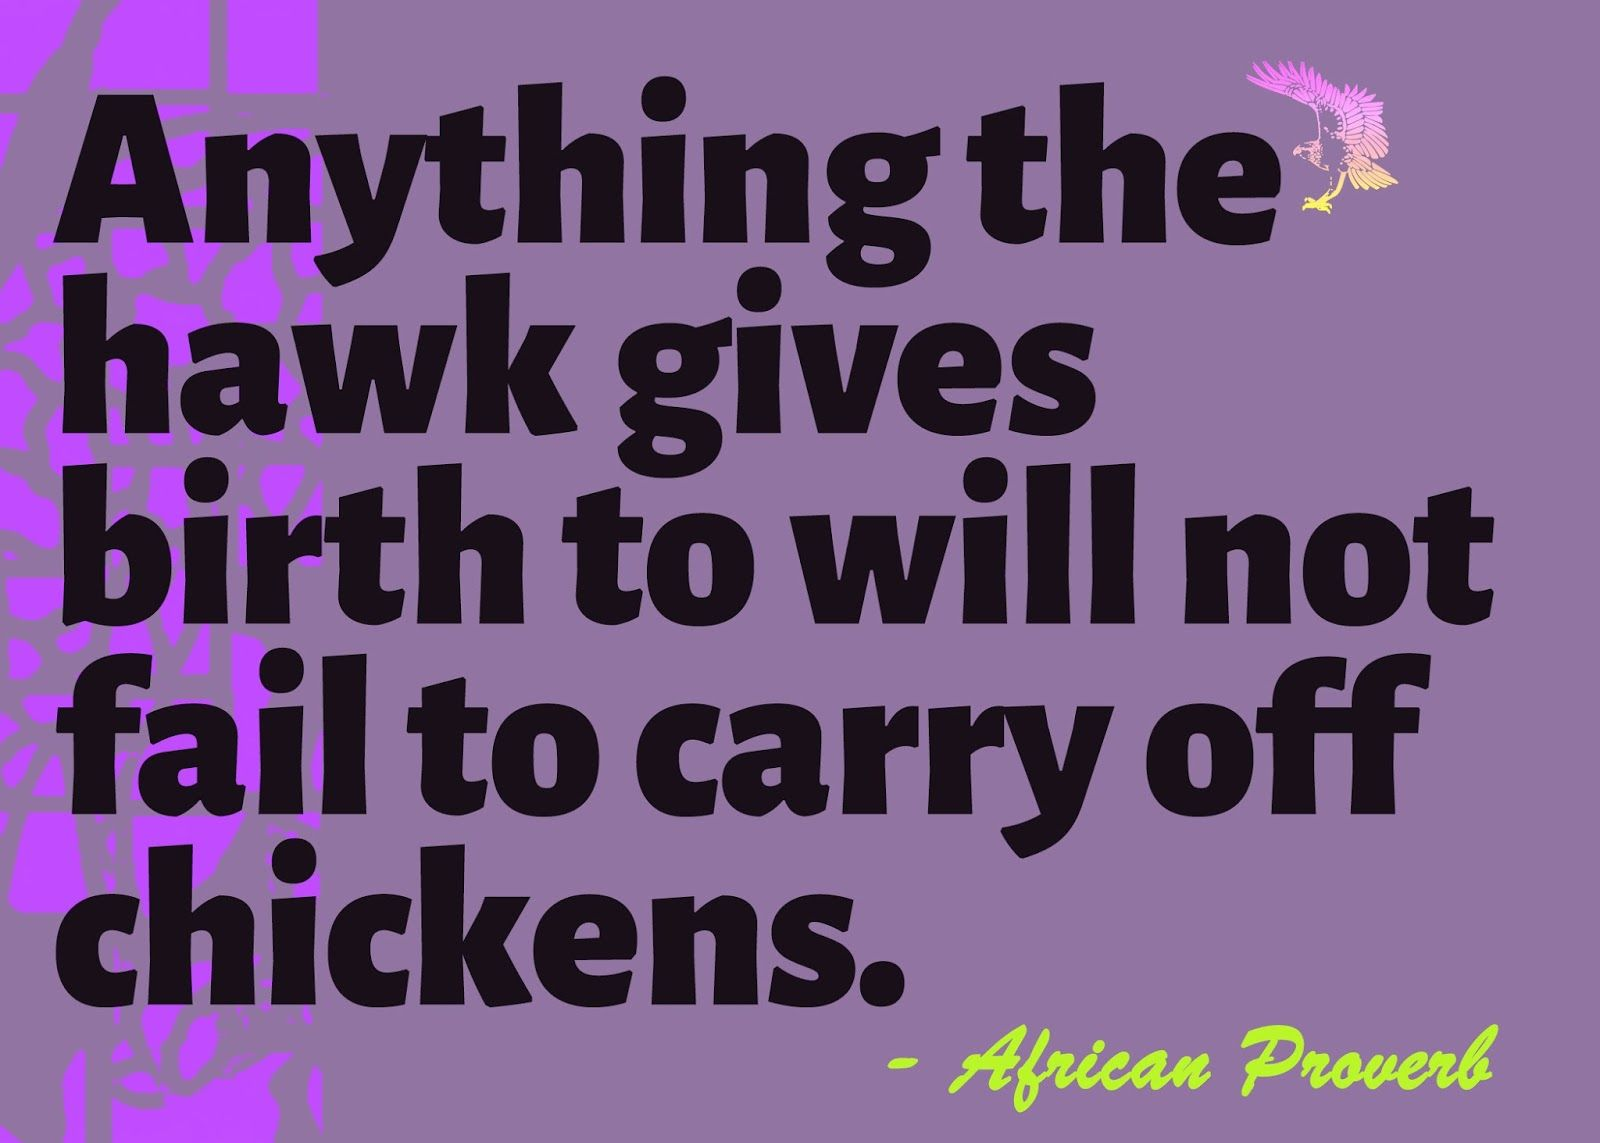 African proverbs quotes and sayings about cunning deceit and lies